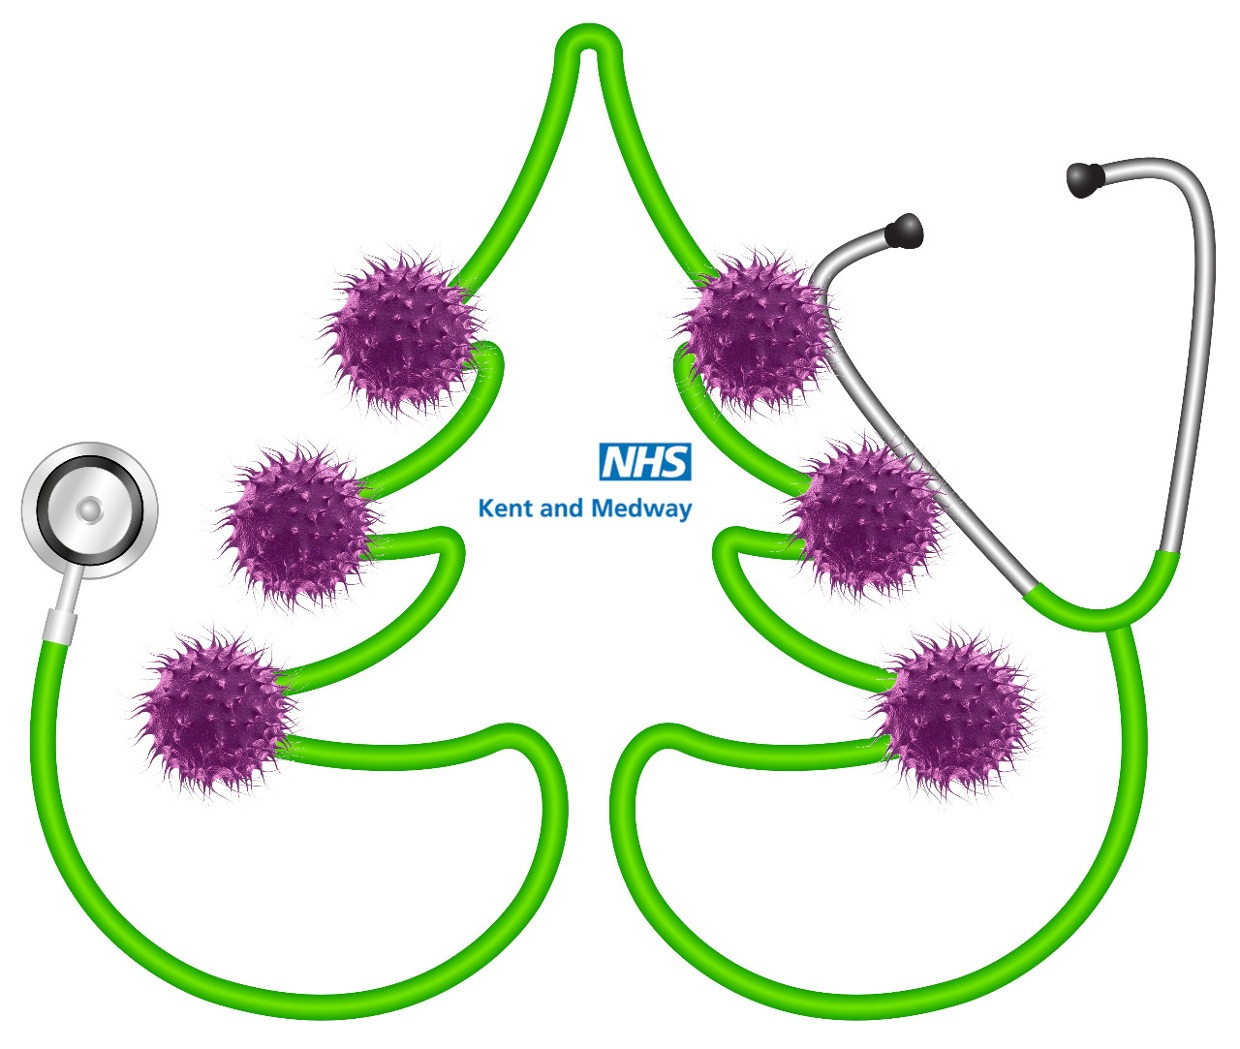 Happy Christmas from the NHS